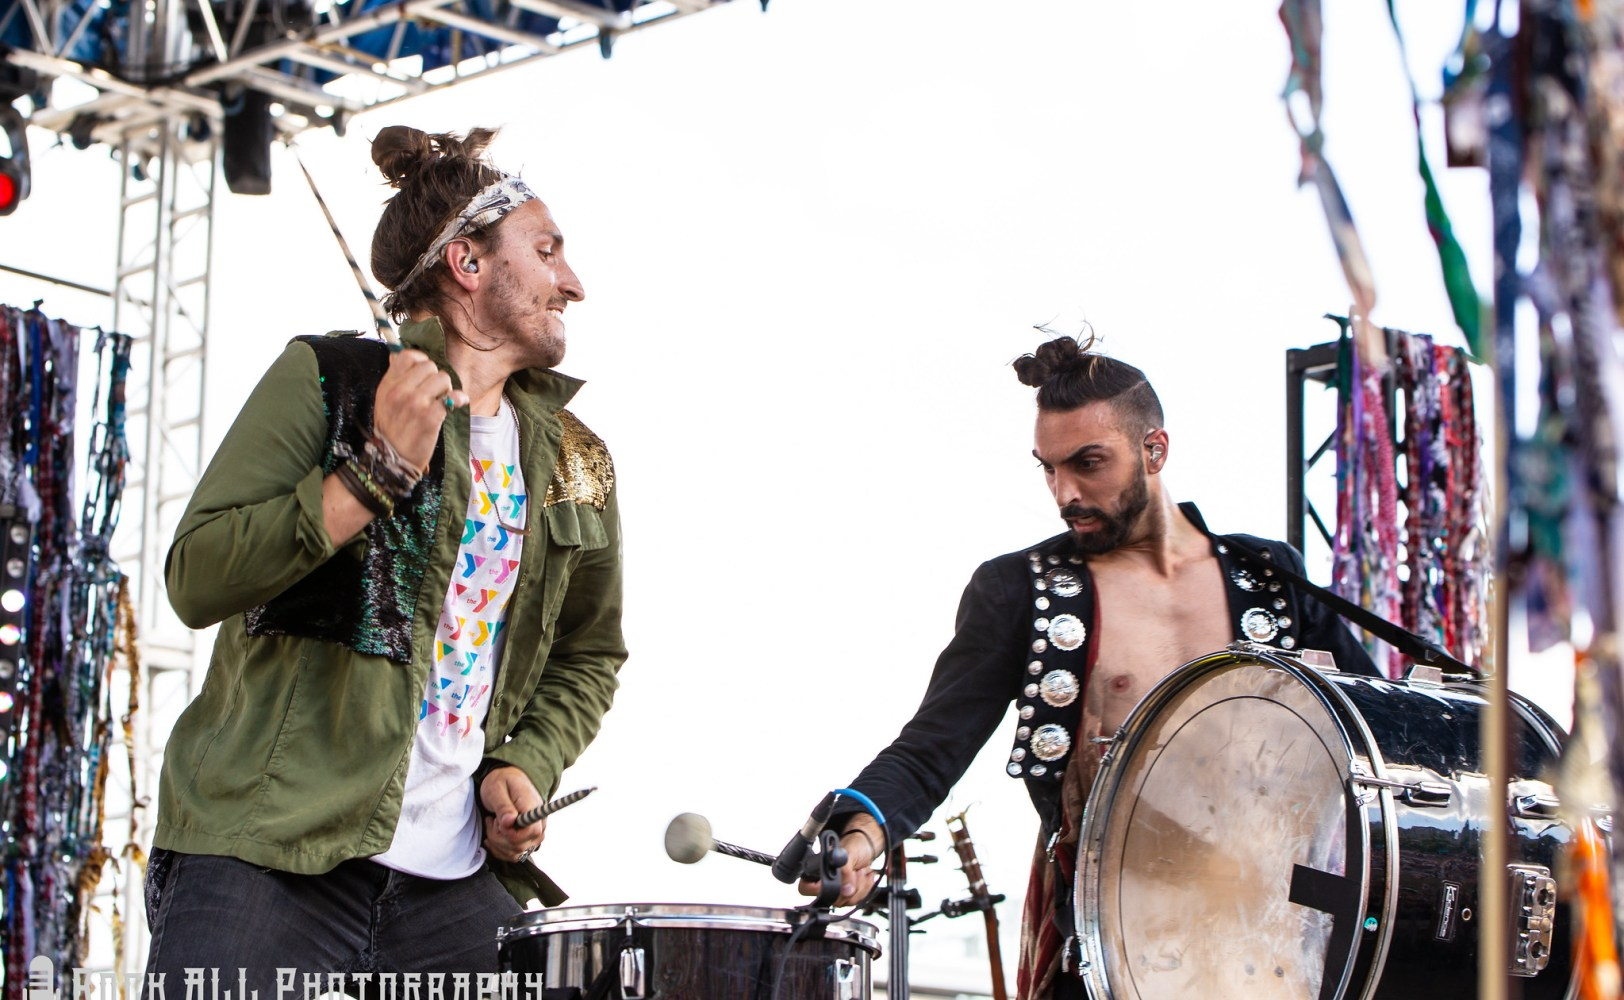 MAGIC GIANT - Bunbury Music Festival 2018 - 6/2/18 - Cincinnati Ohio